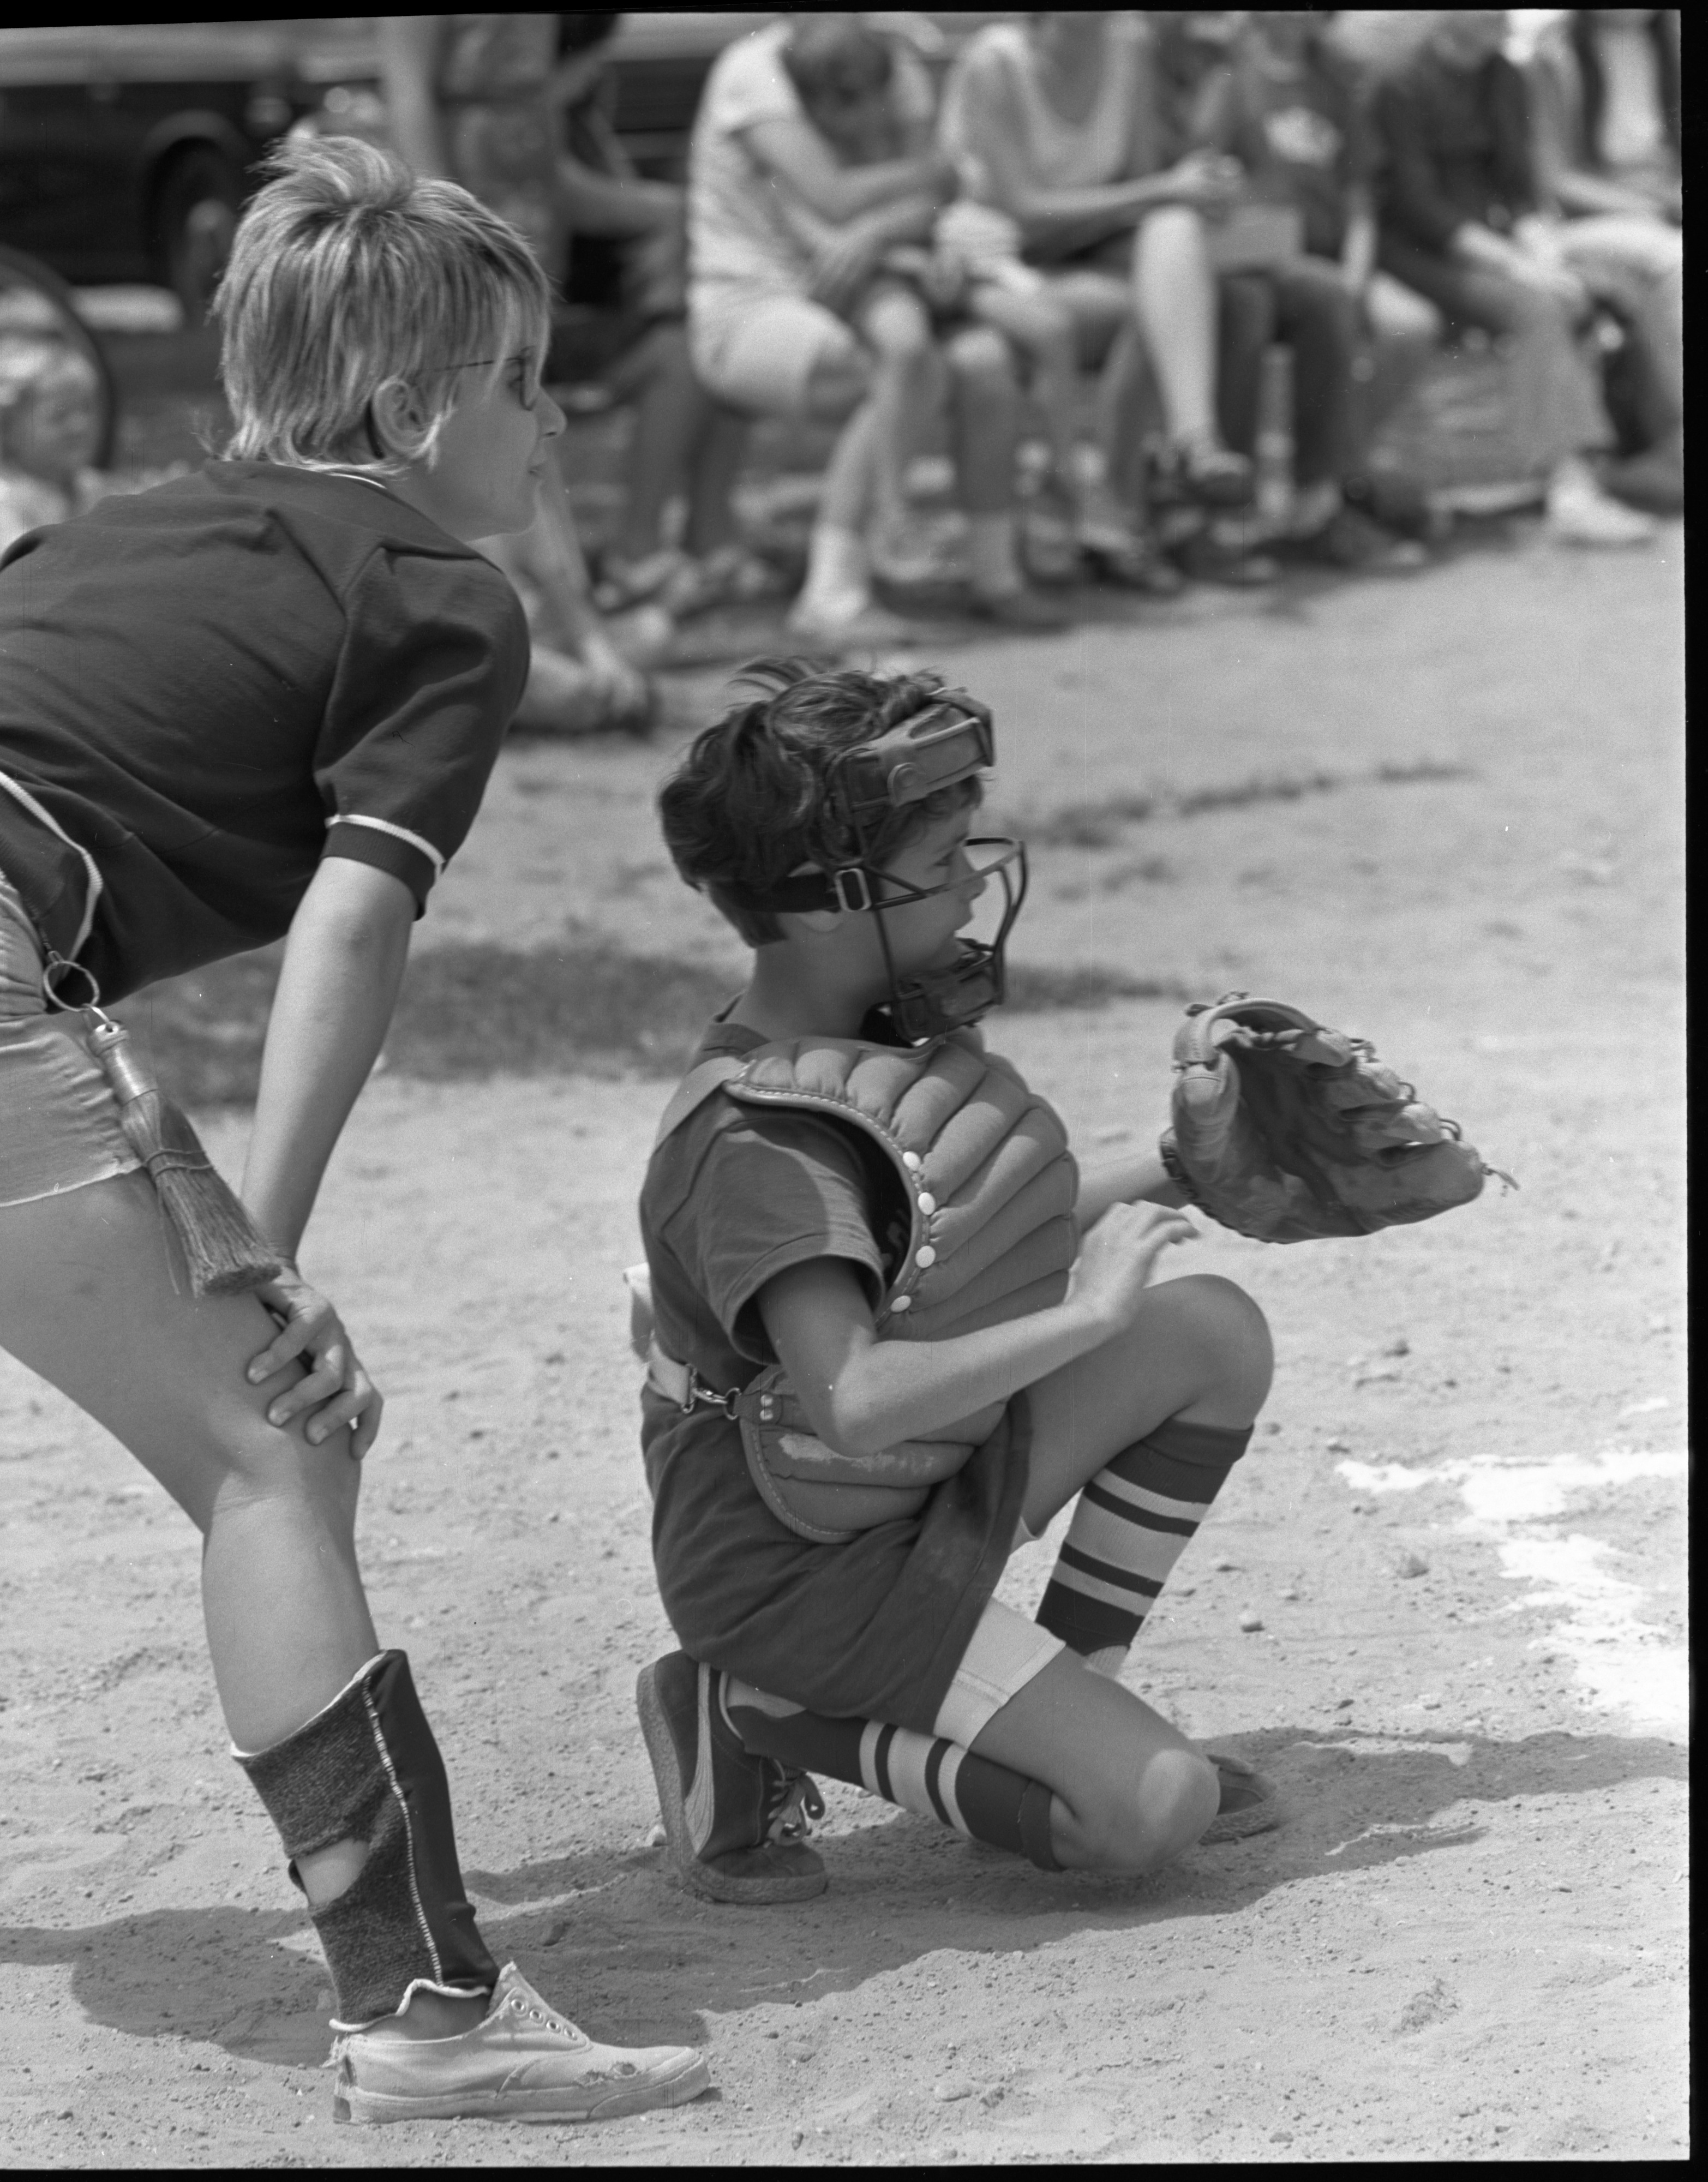 Girls Softball - Kelly Spaulding Waits For The Pitch At Home Plate, July 1972 image